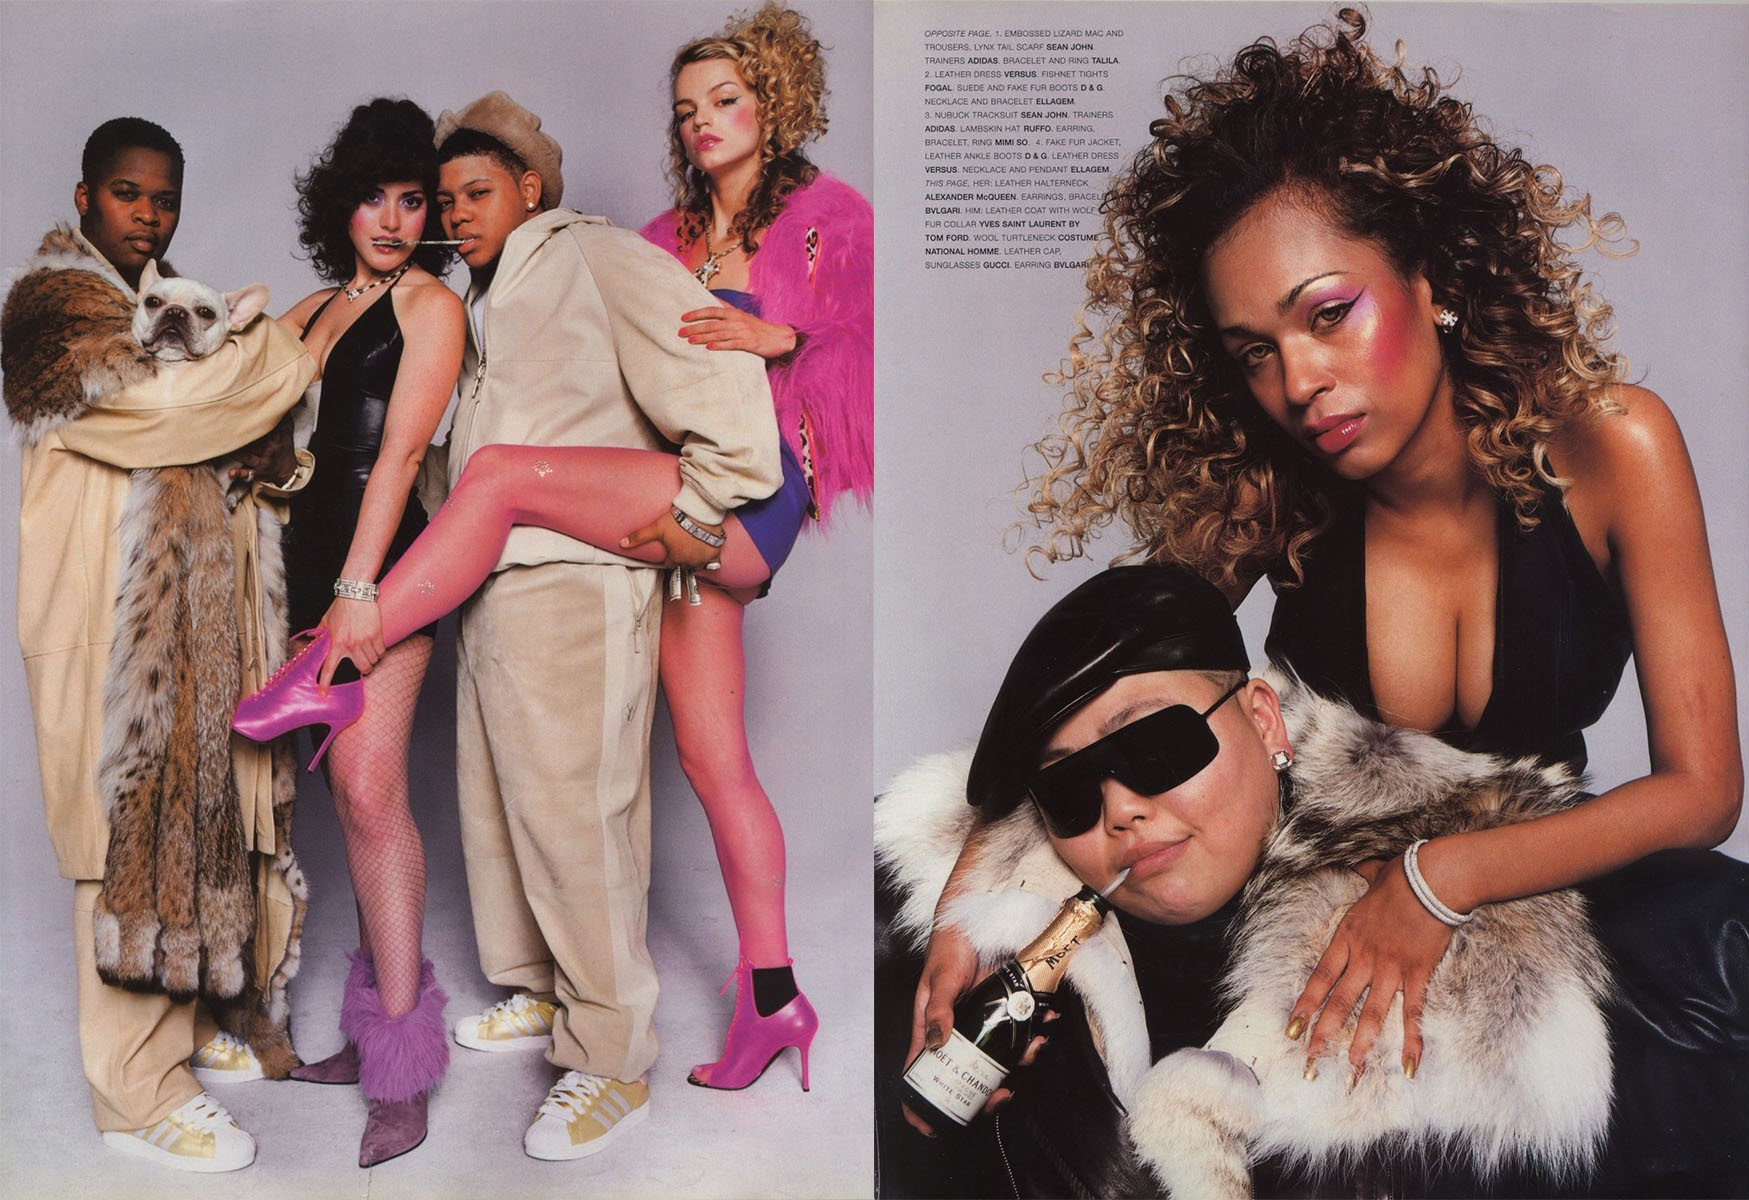 gang bang photography terry richardson stylist jason farrer vogue hommes international fw 2001 02 2